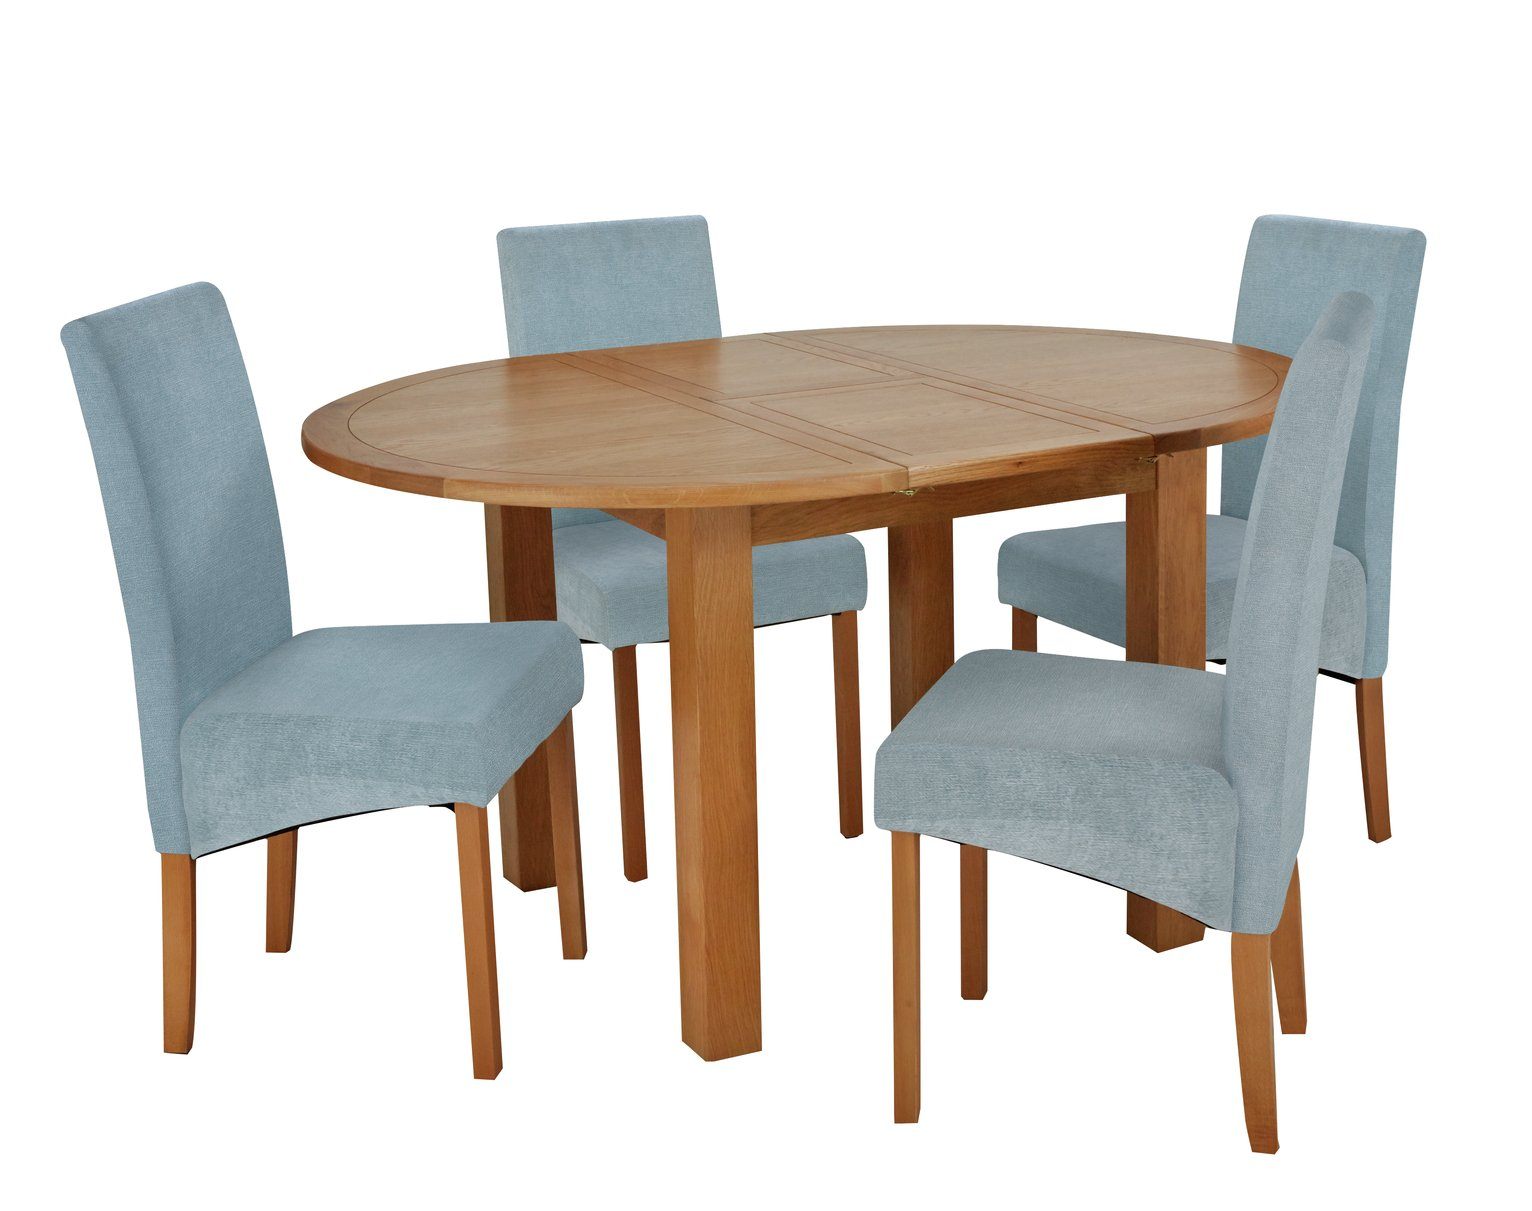 Argos Home Clifton Extendable Table & 4 Chairs - Duck Egg